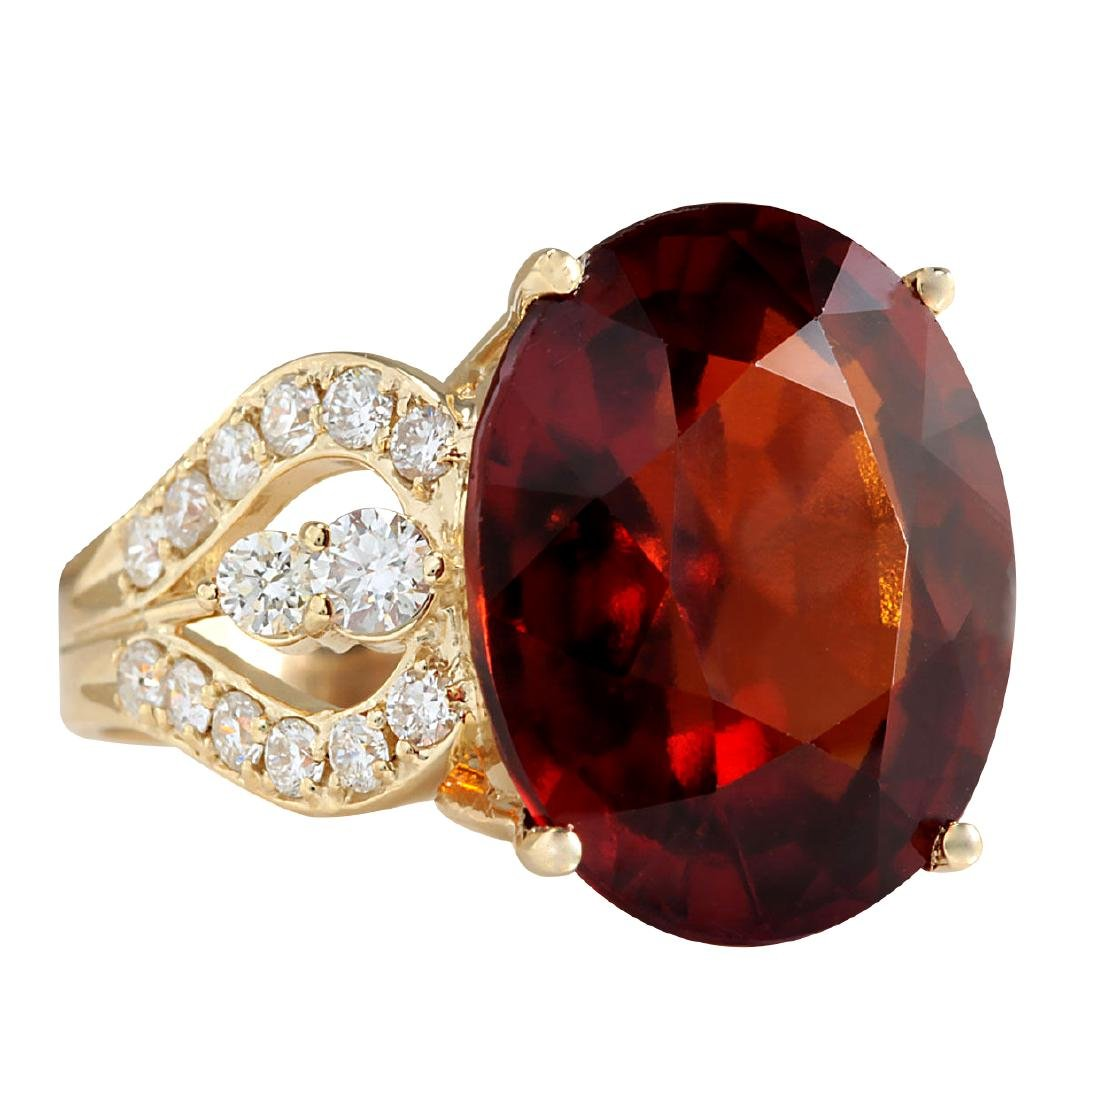 19.58CTW Natural Hessonite Garnet And Diamond Ring In - 2